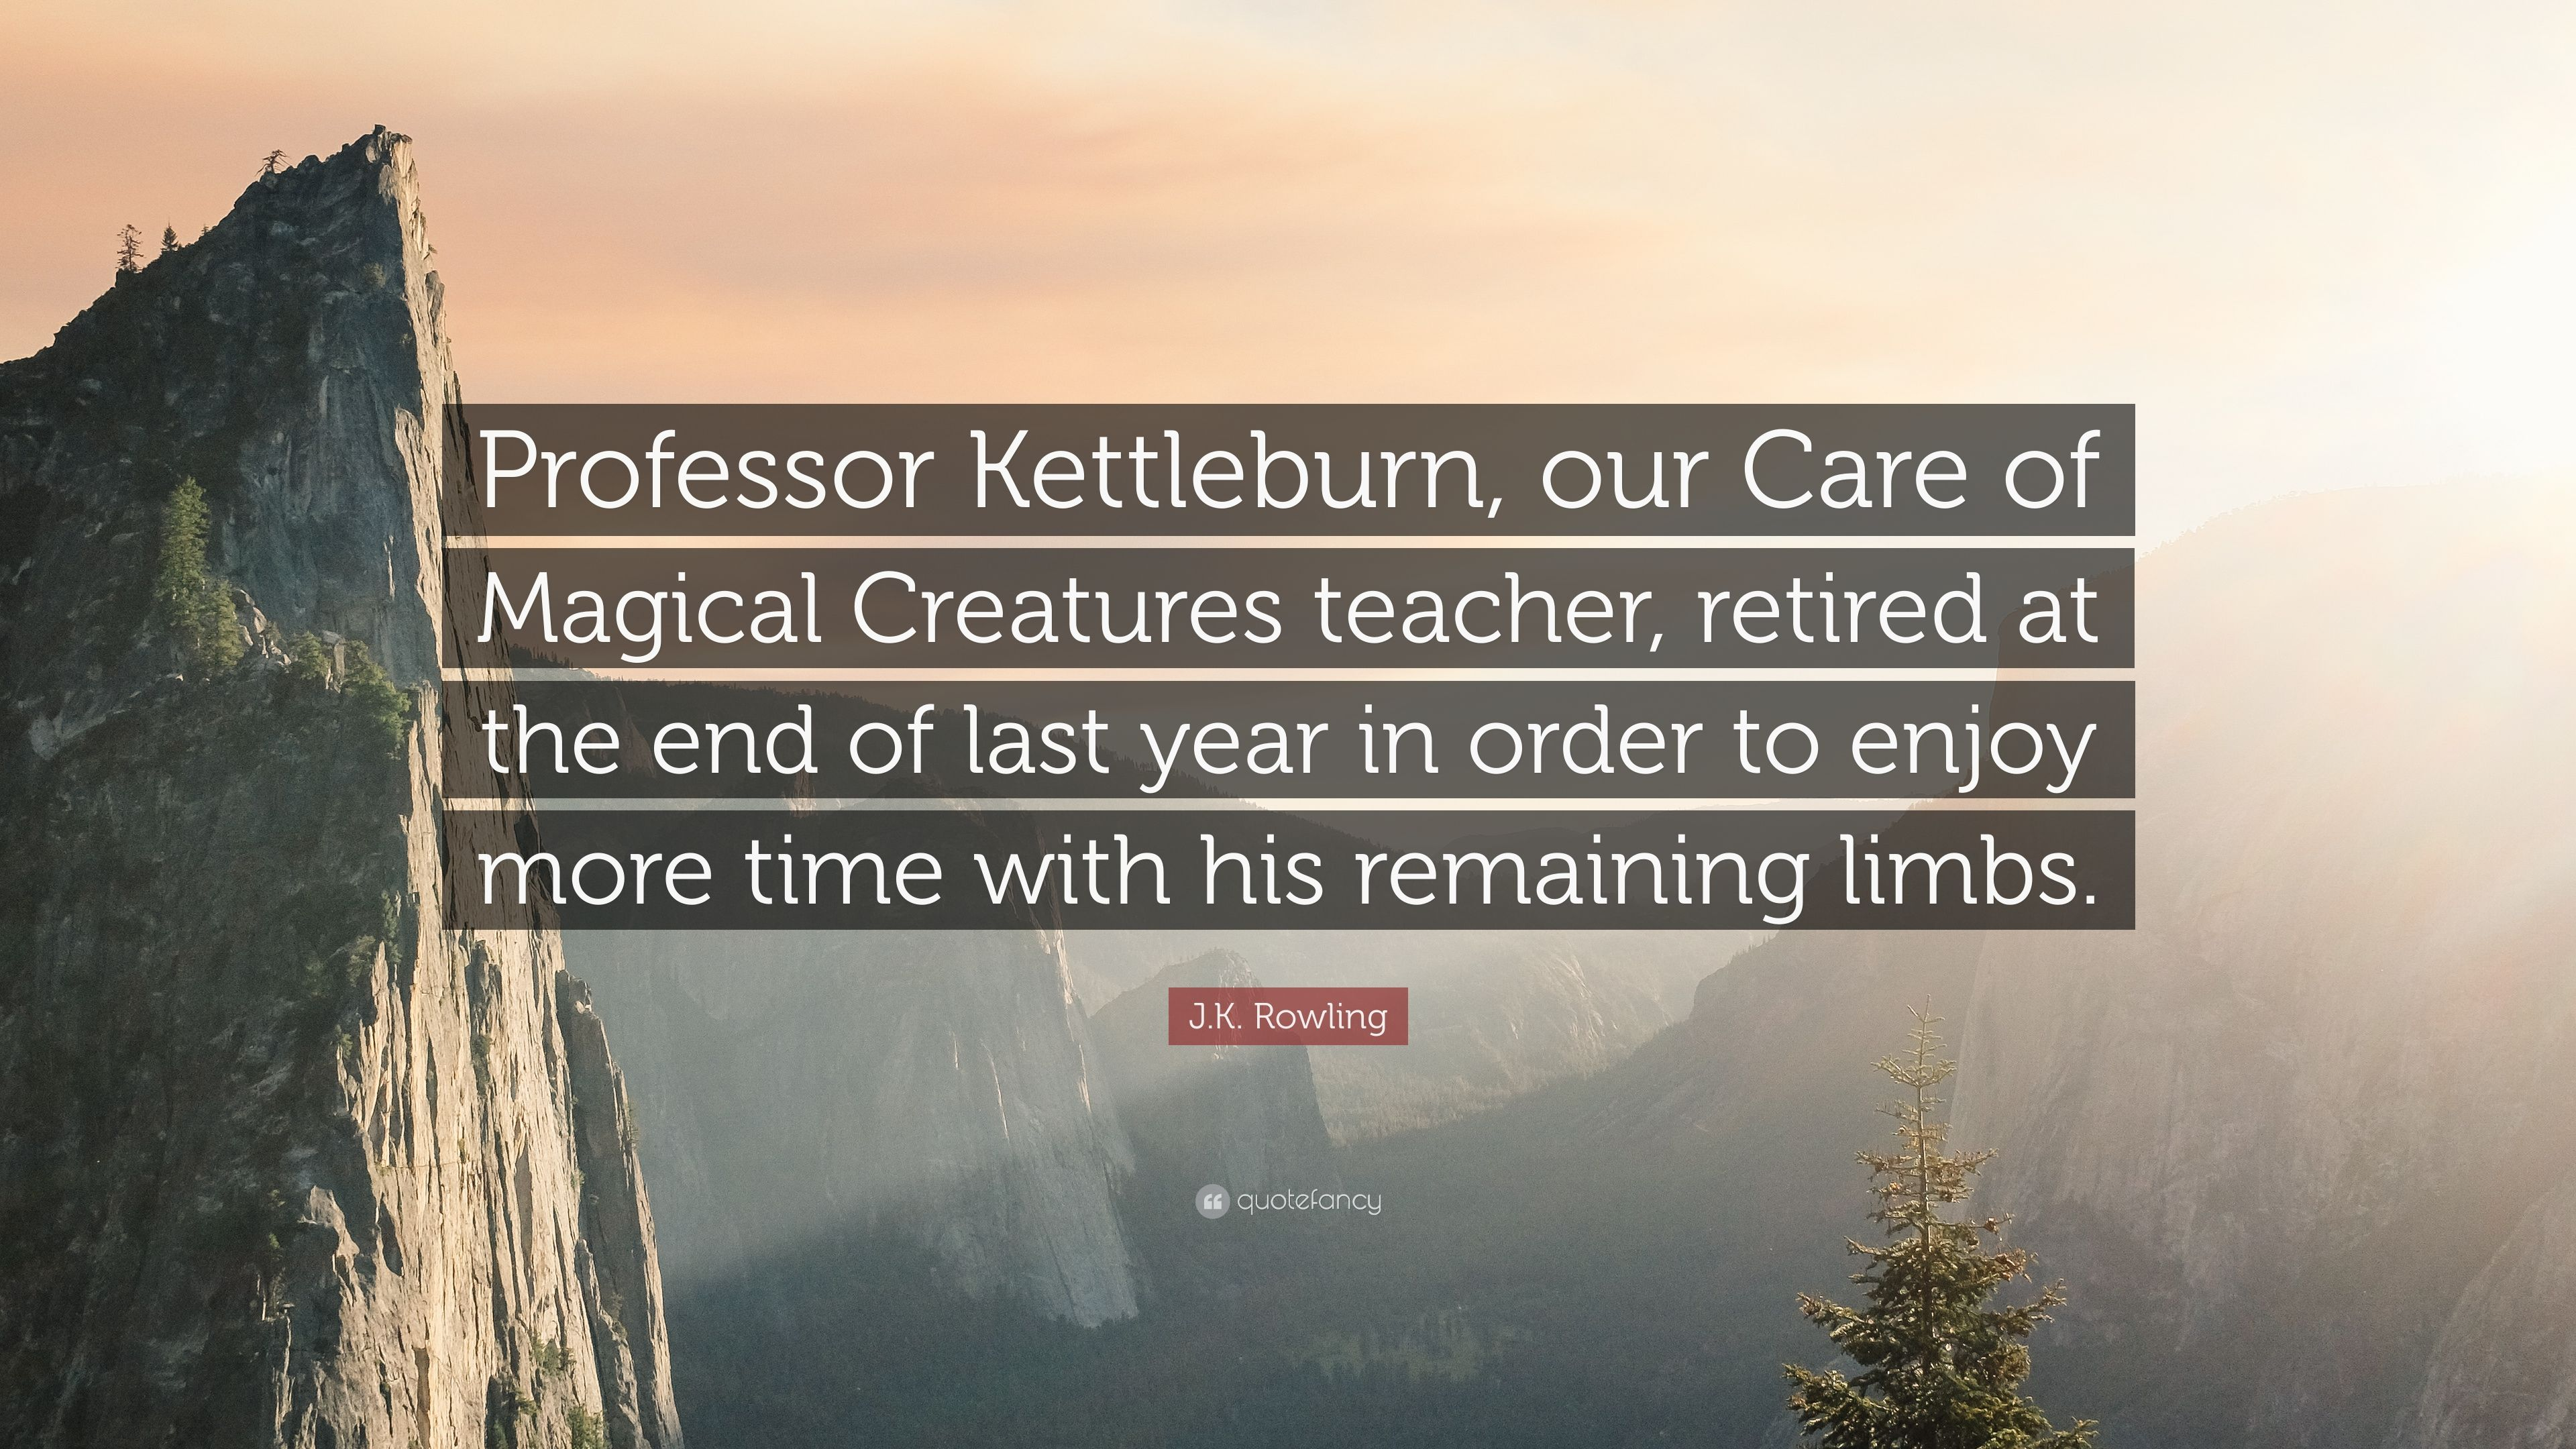 J K Rowling Quote Professor Kettleburn Our Care Of Magical Creatures Teacher Retired At The End Of Last Year In Order To Enjoy More Time 7 Wallpapers Quotefancy